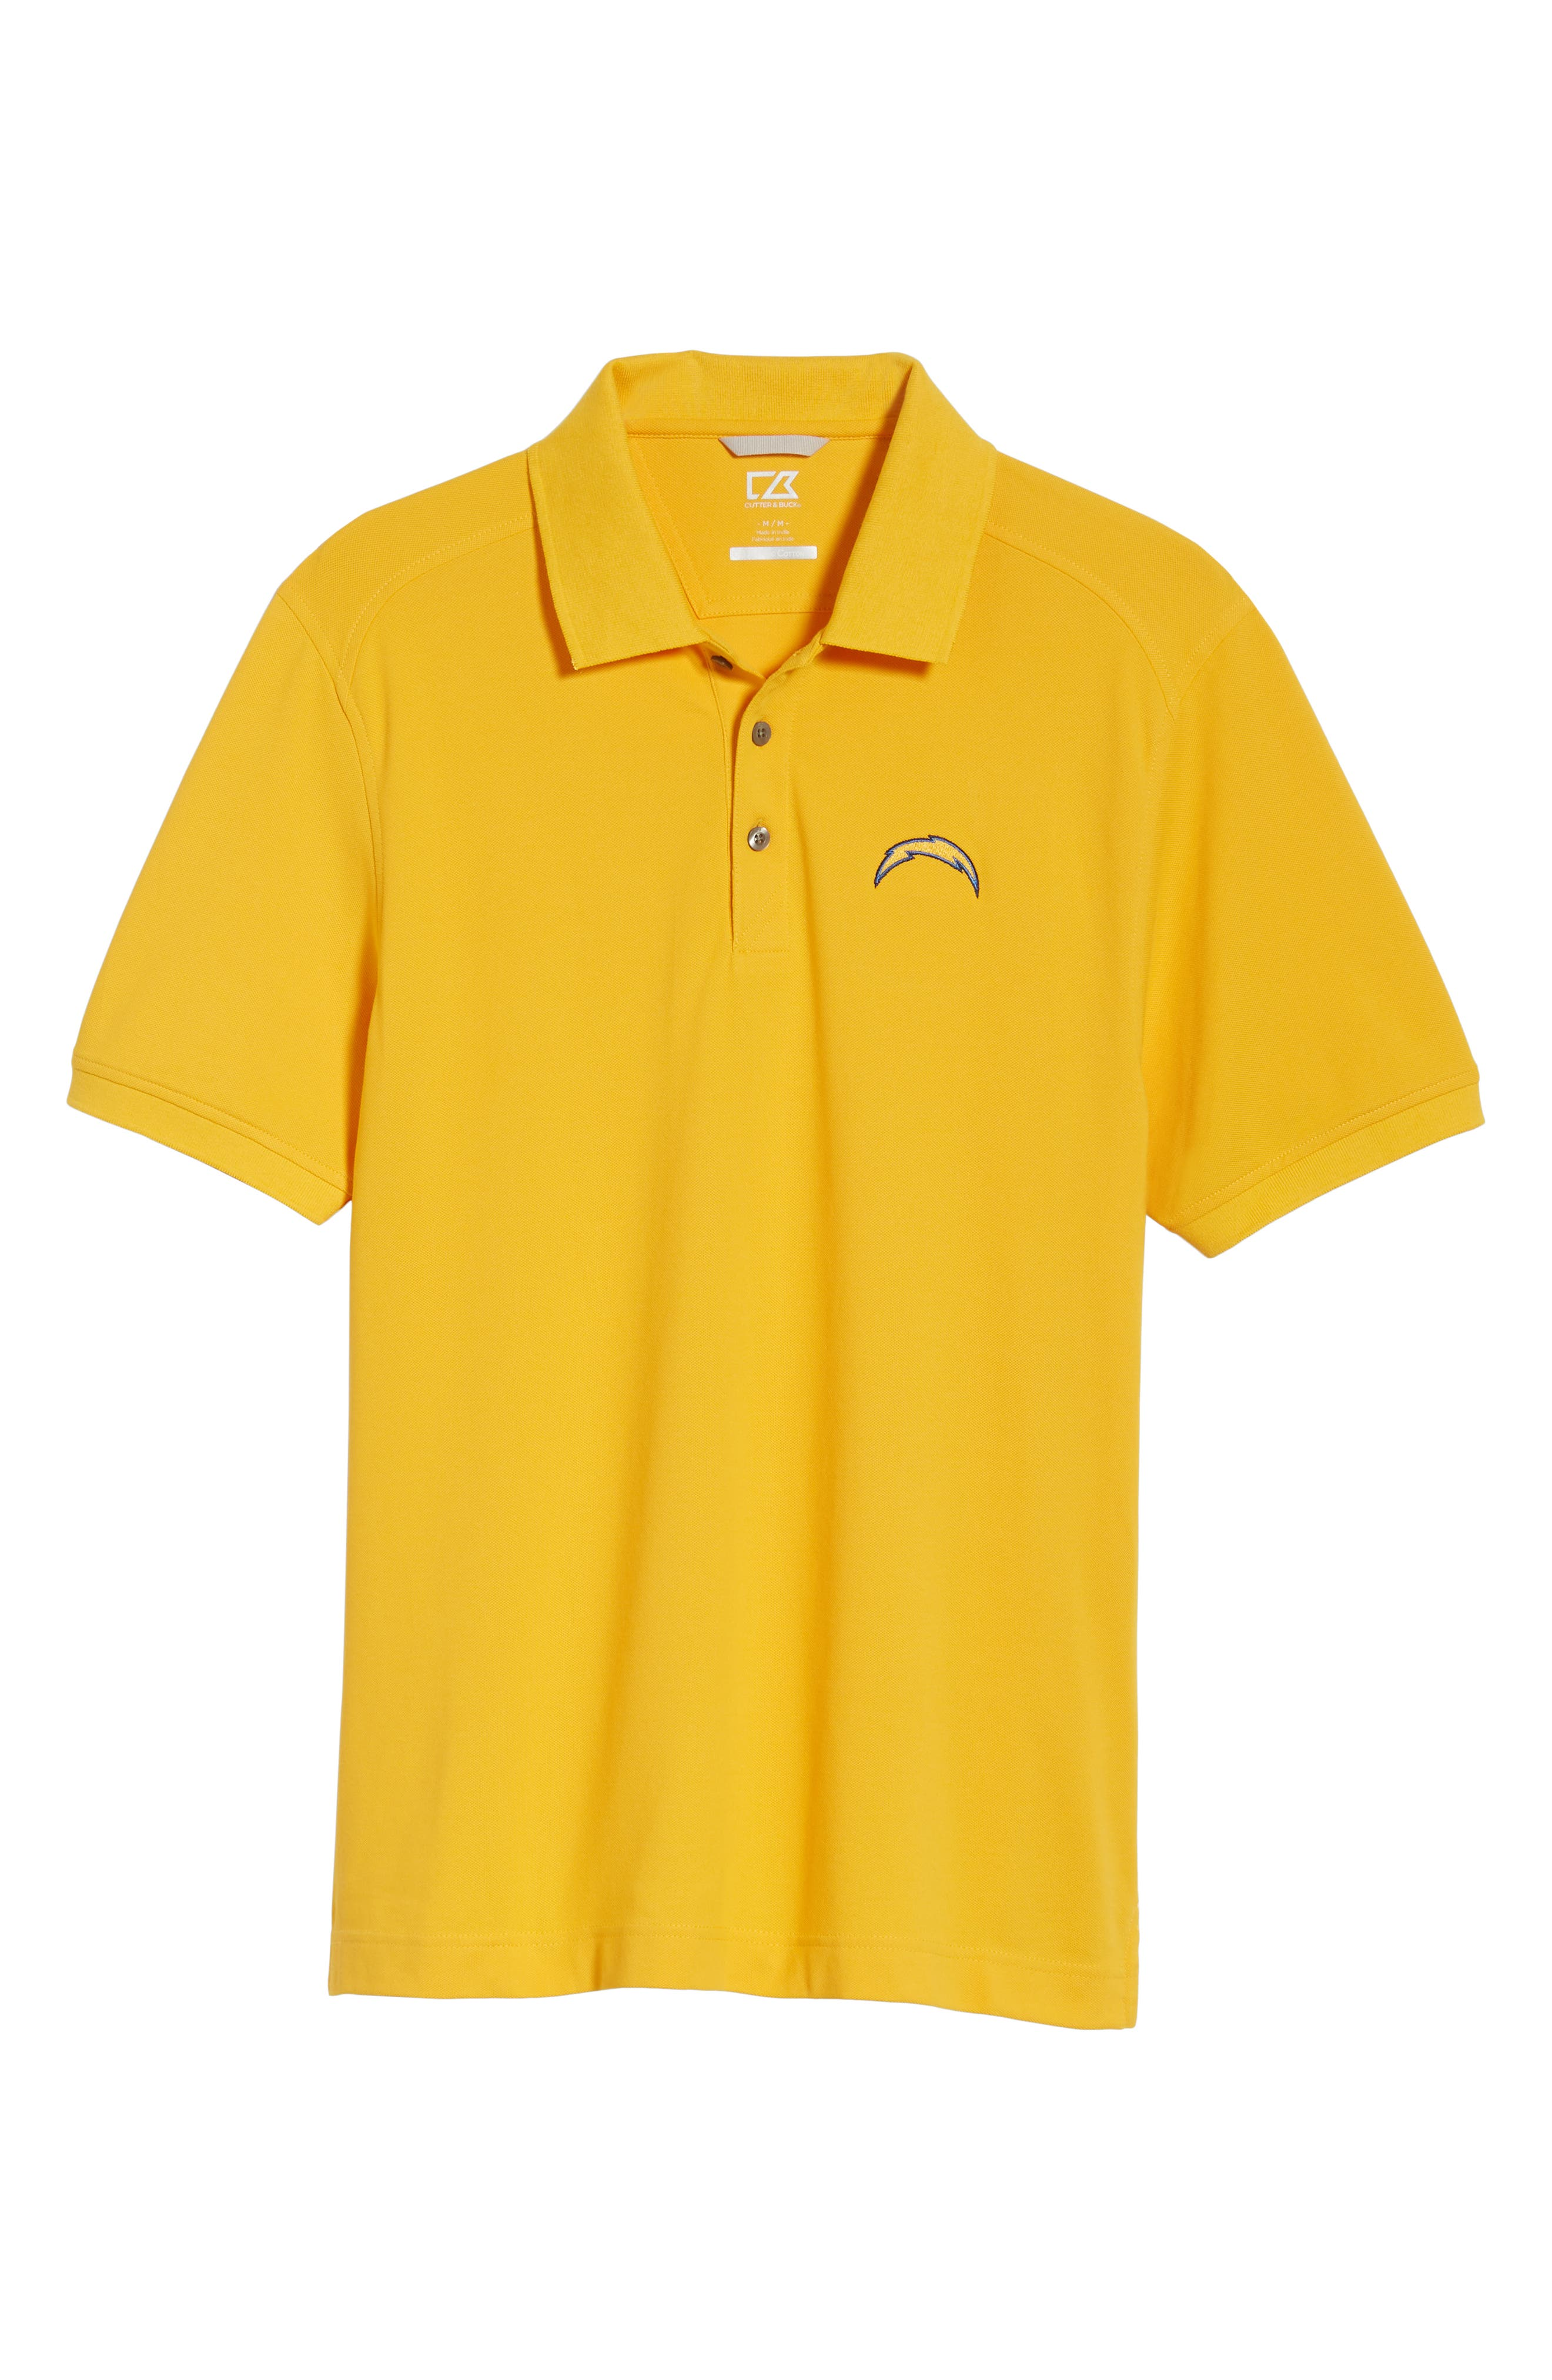 Los Angeles Chargers - Advantage Regular Fit DryTec Polo,                             Alternate thumbnail 6, color,                             COLLEGE GOLD